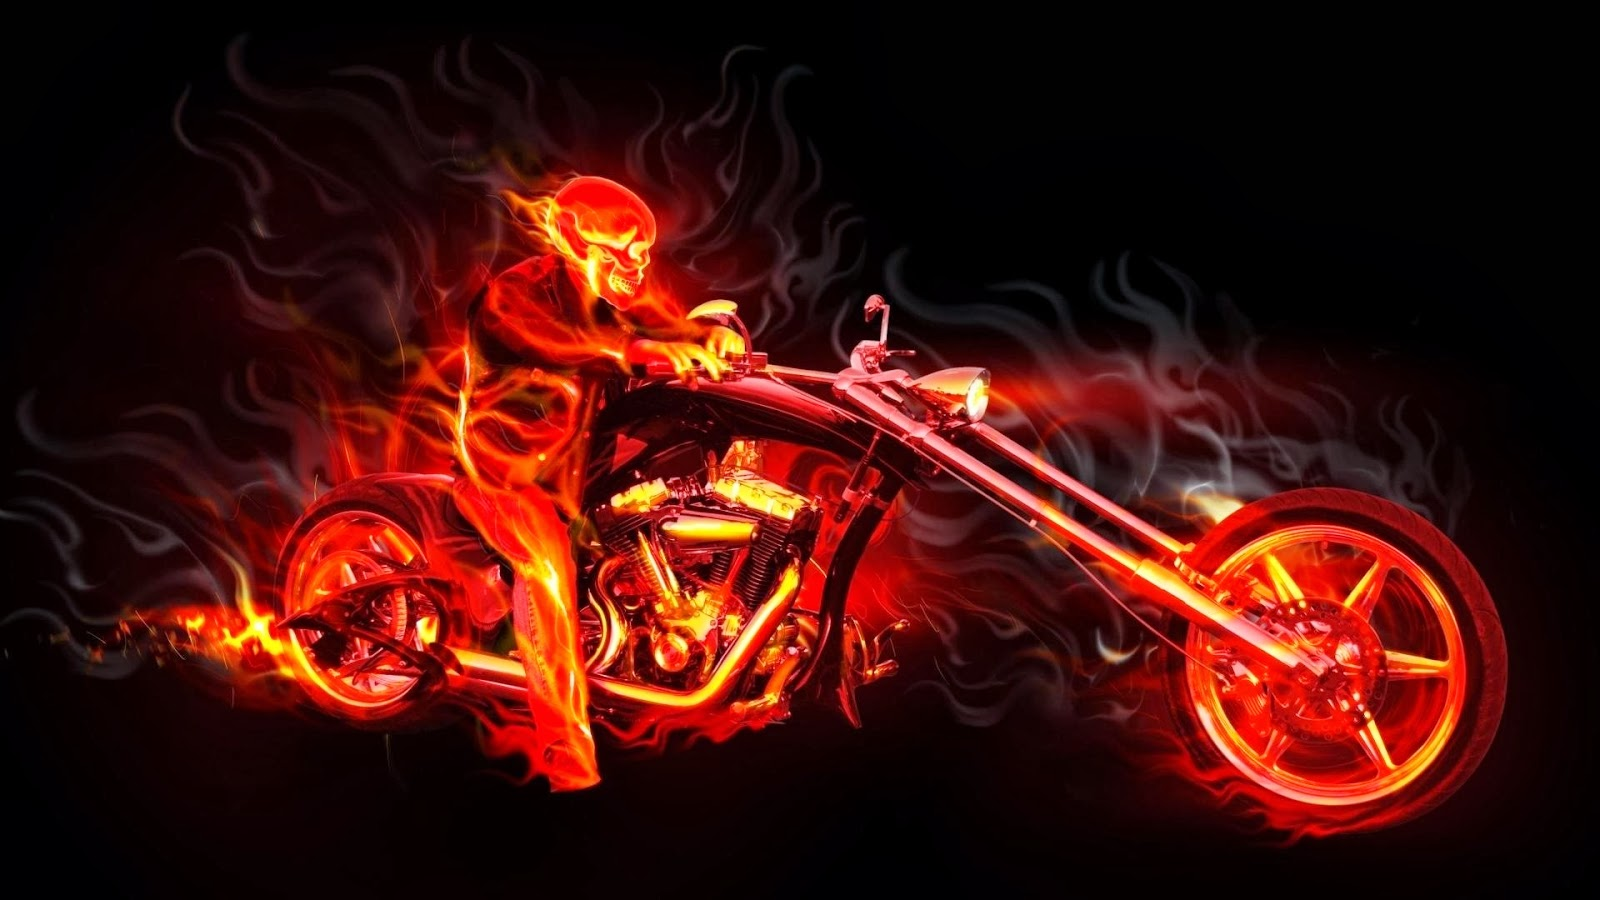 Top   Wallpaper Horse Ghost Rider - Unik06  Perfect Image Reference_983283.jpg